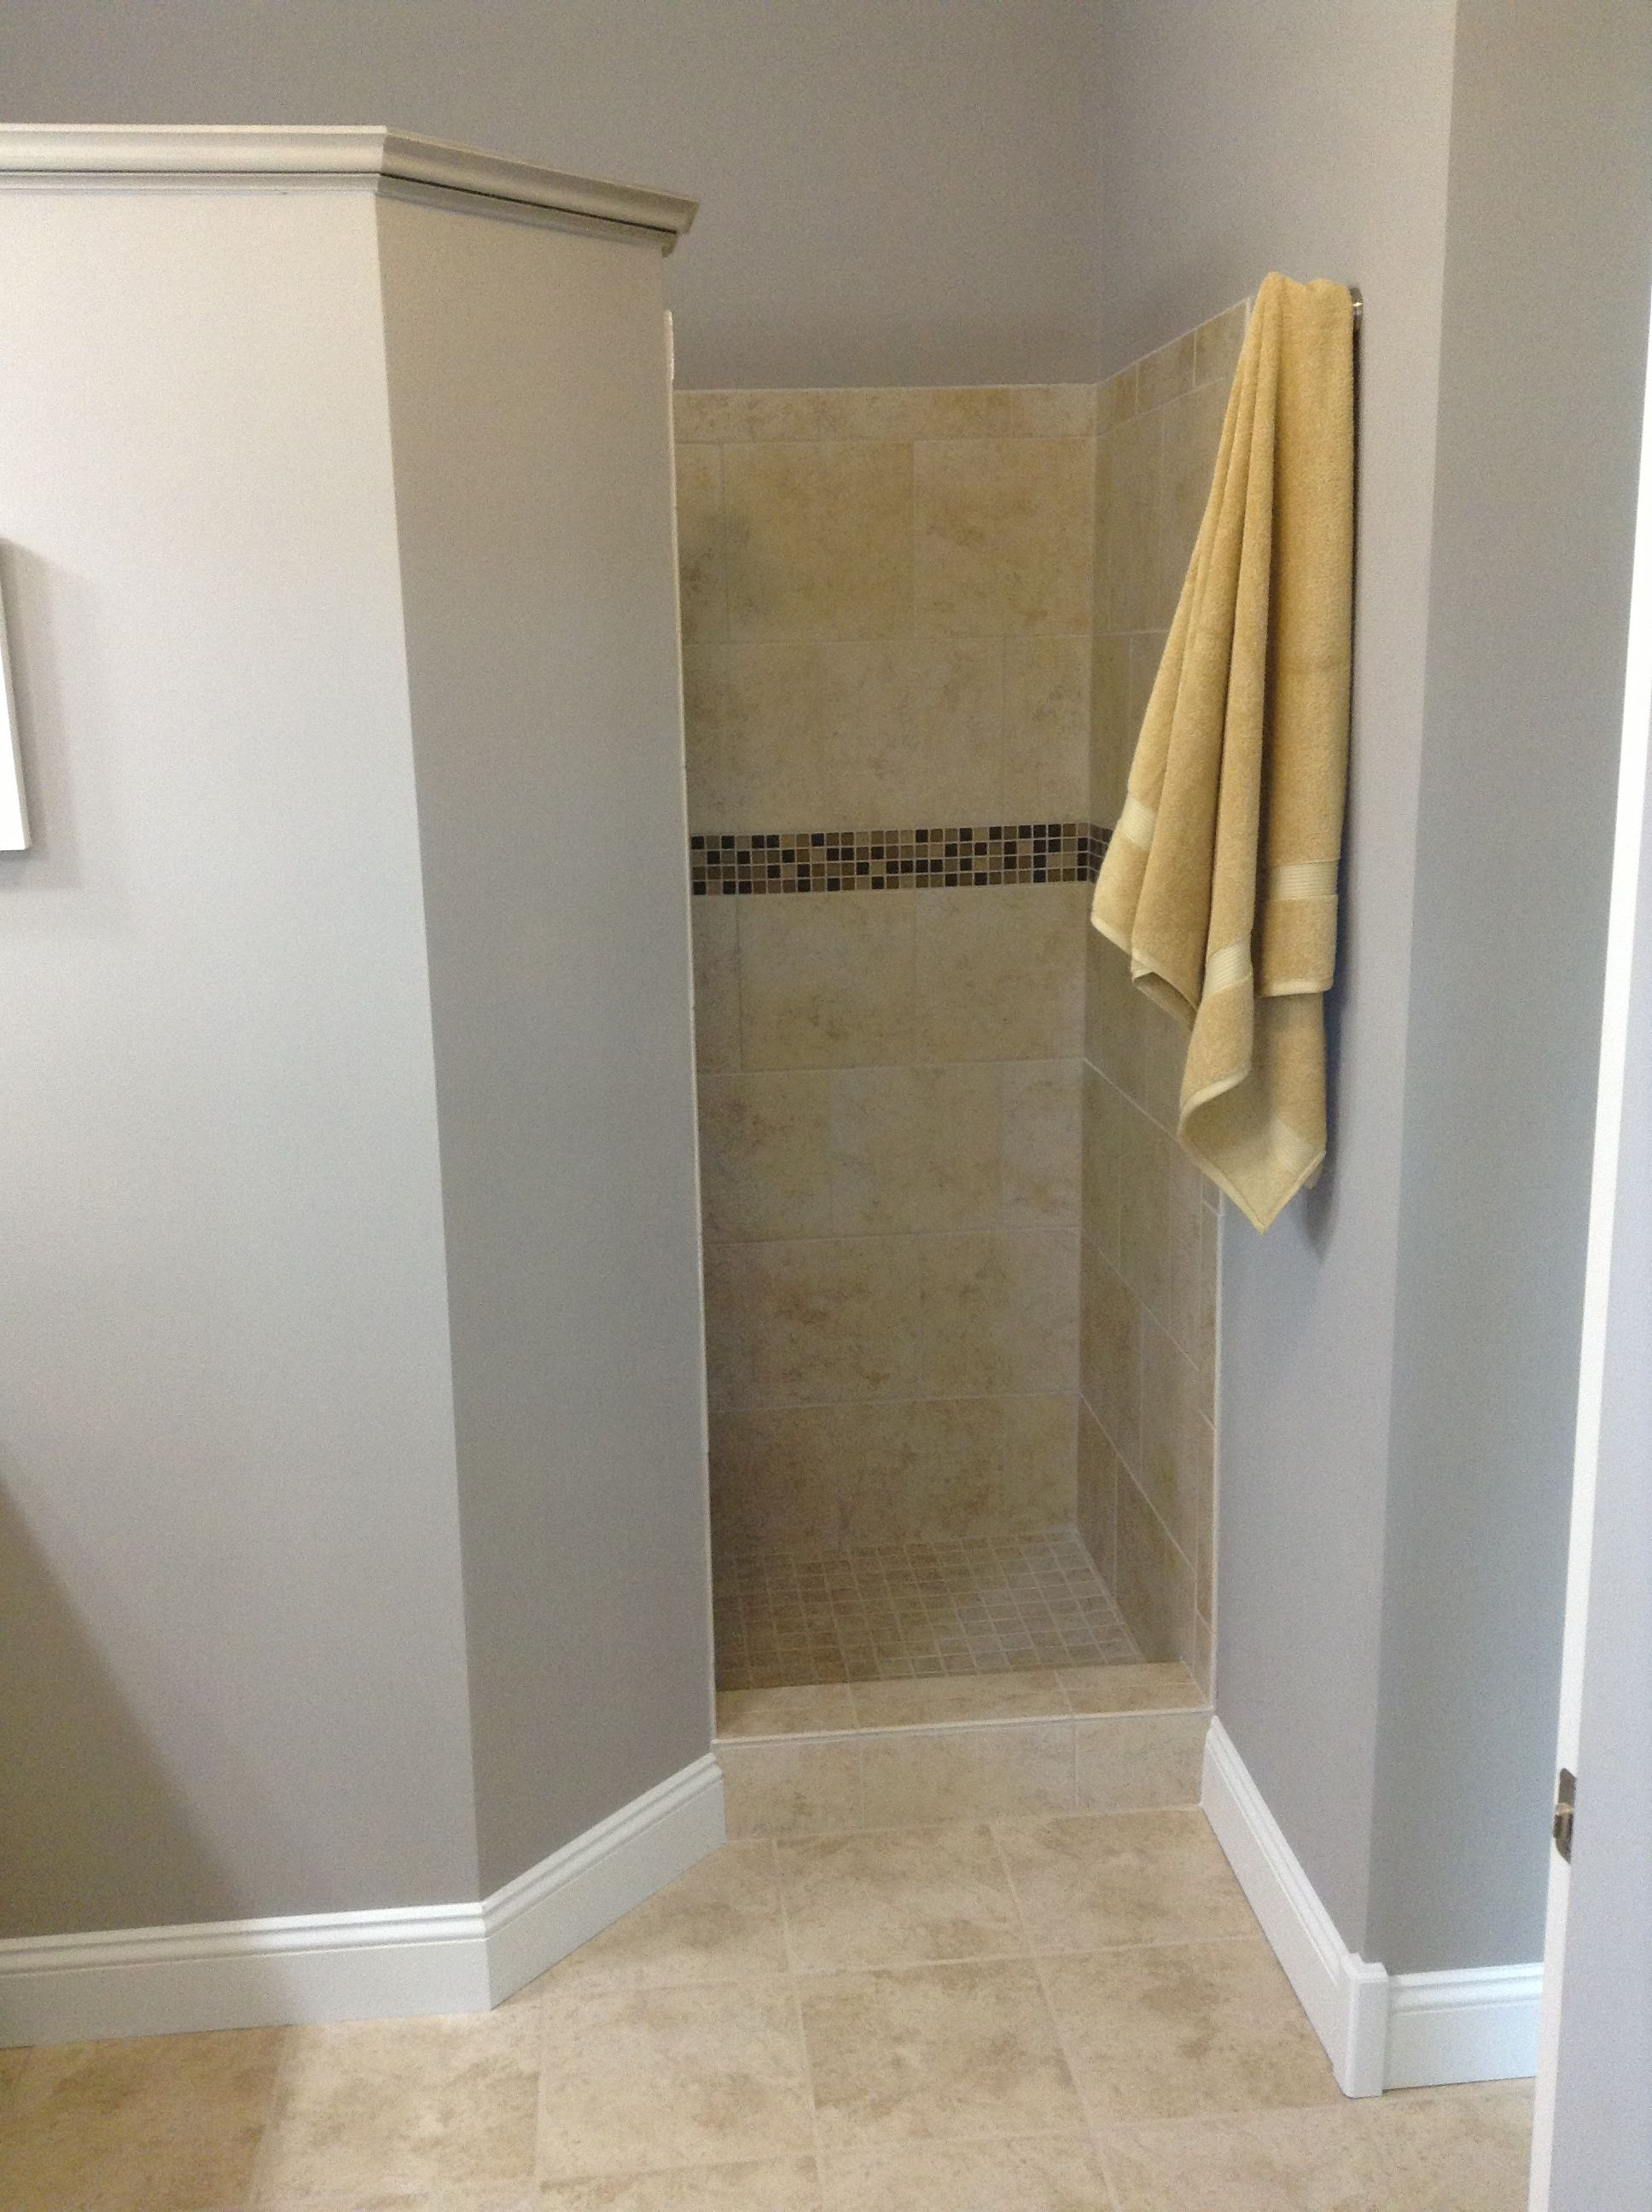 With this walk-in shower, you'll never clean a shower door again ...